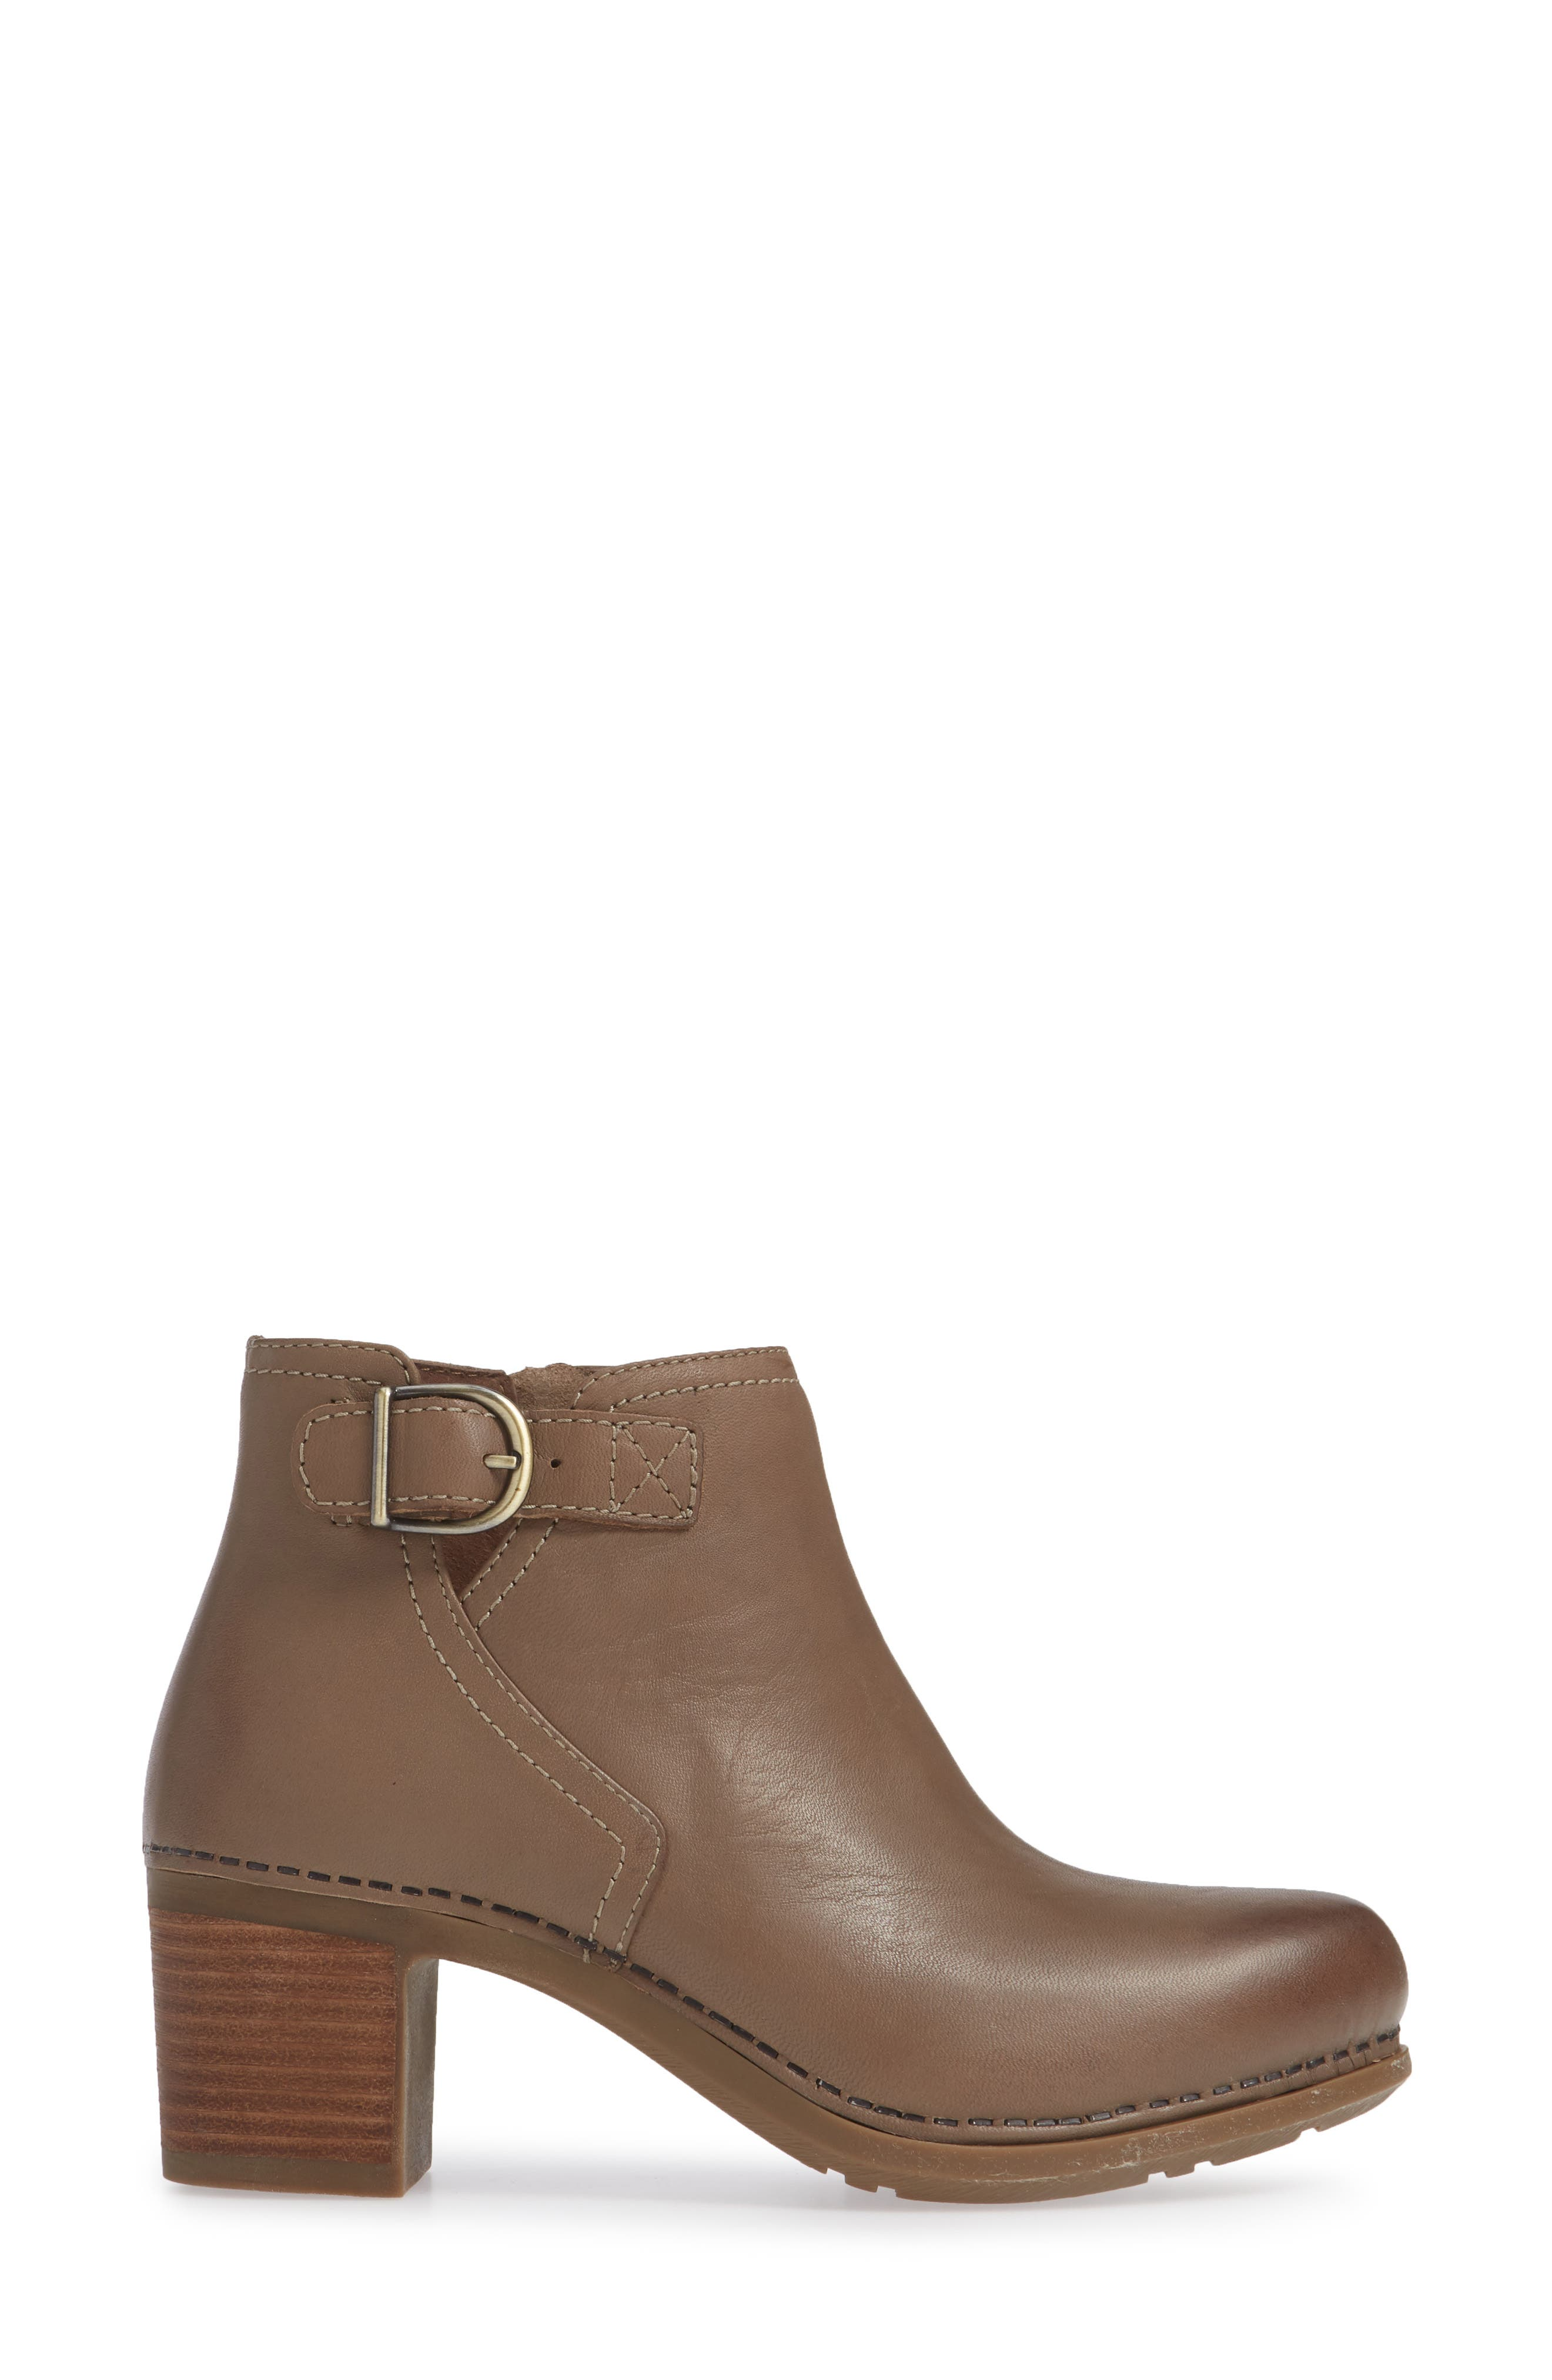 Henley Bootie,                             Alternate thumbnail 3, color,                             TAUPE LEATHER